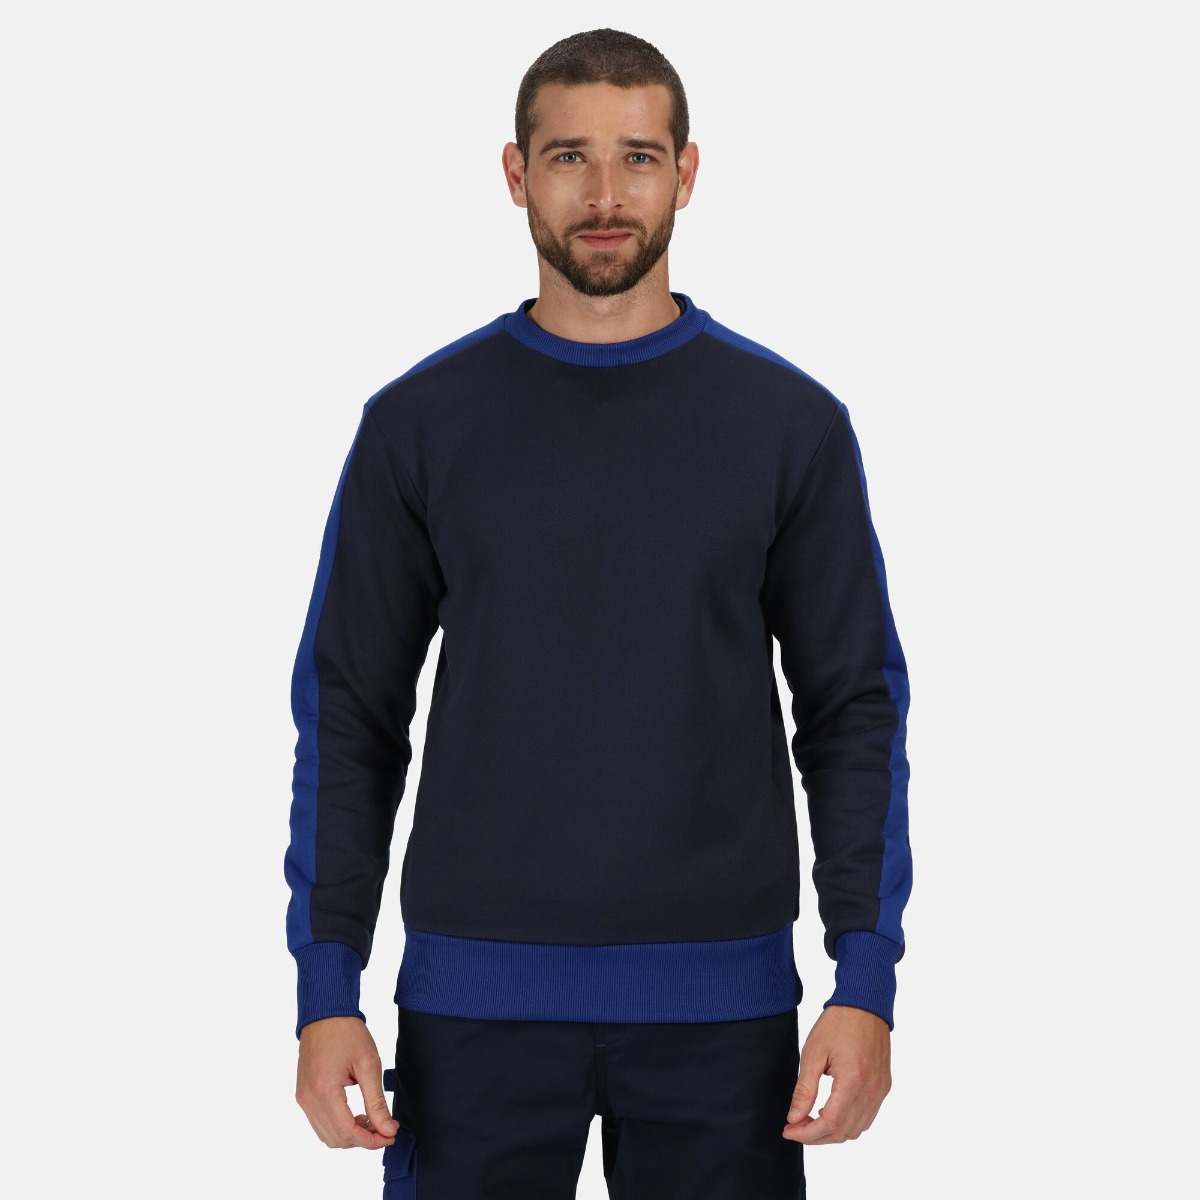 Regatta Contrast Crew Neck Sweater, Navy/New Royal, Size M